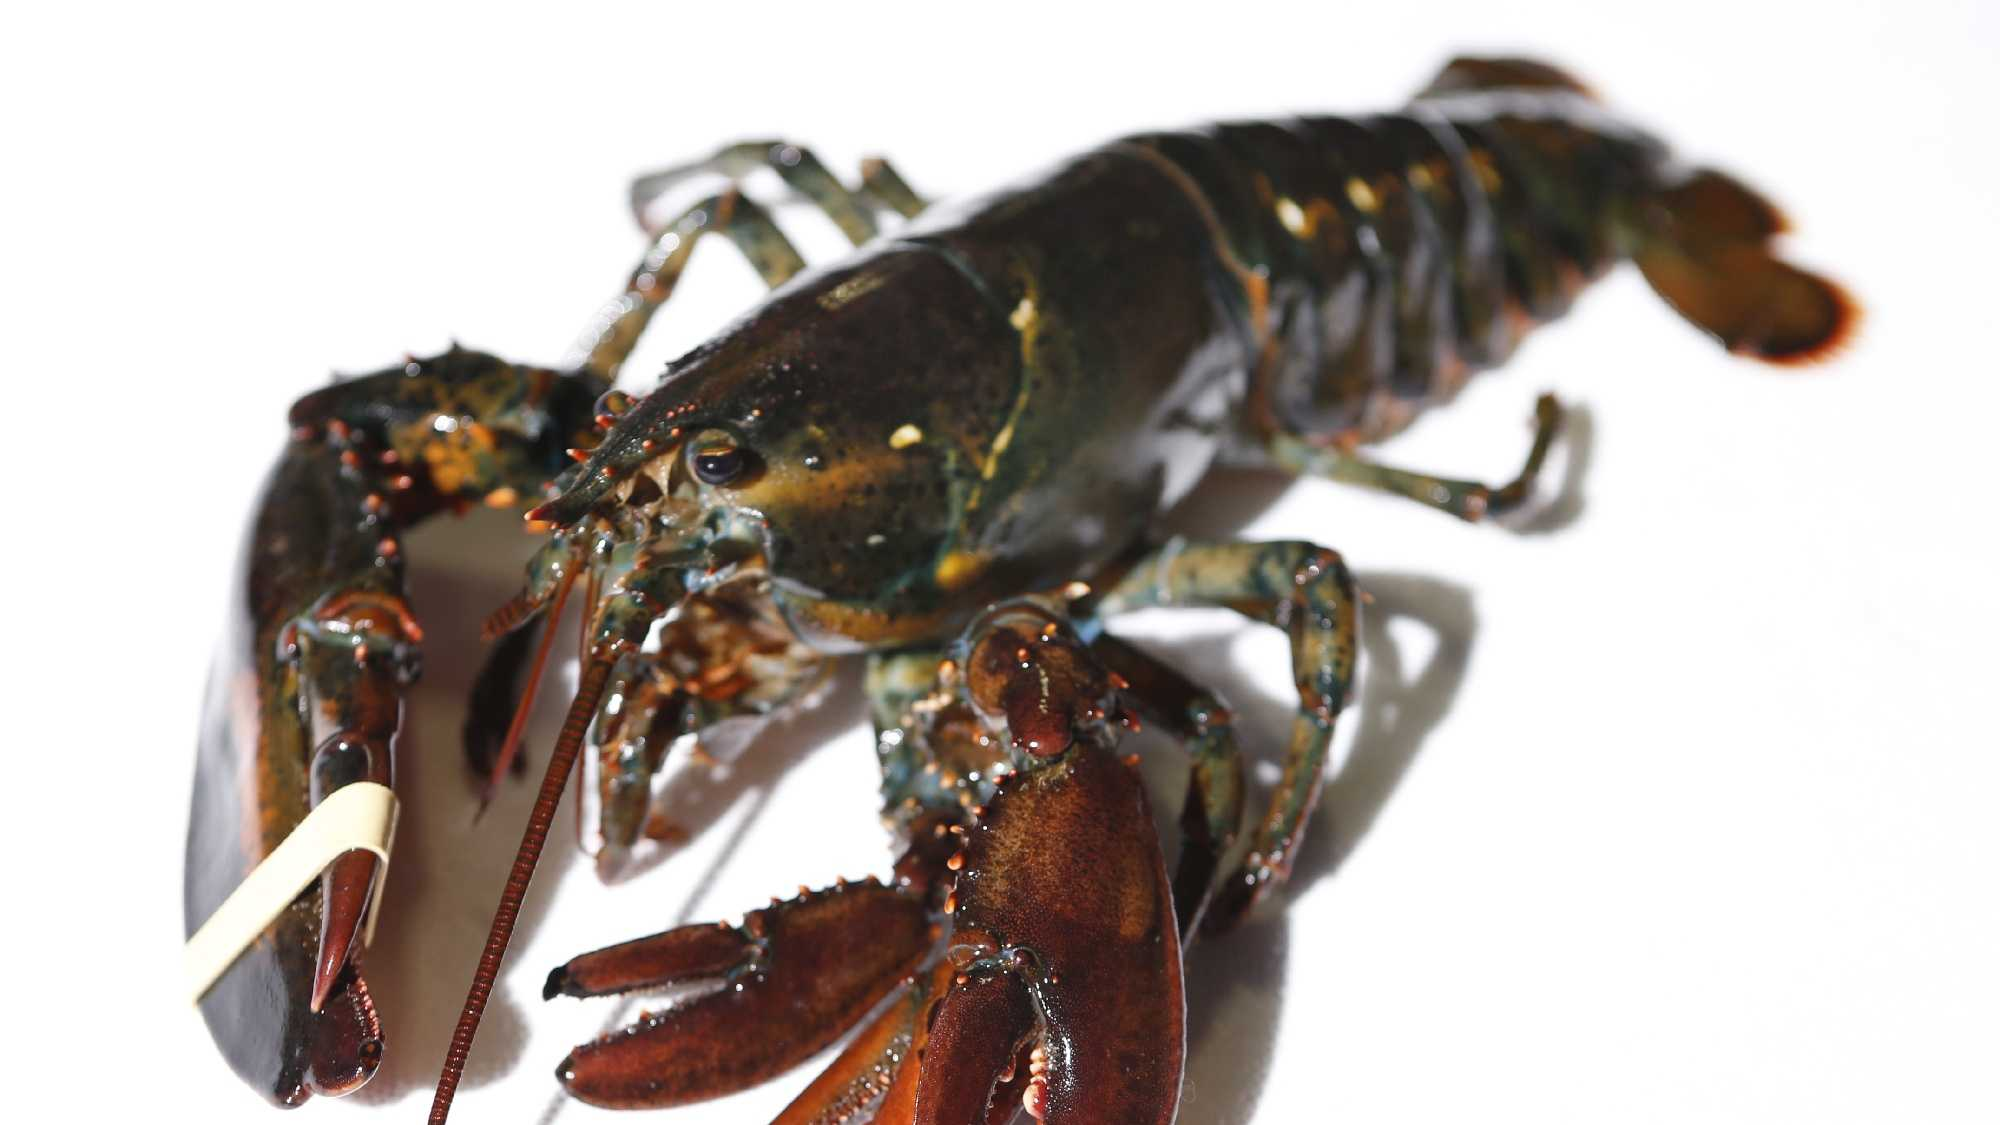 A four-clawed female lobster is seen at Ready Seafood Co., Thursday, March 10, 2016, in Portland, Maine. The crustacean was most likely caught in Canadian waters before being sold to the wholesale lobster company. The owners said it will be given to the state's marine resource lab.